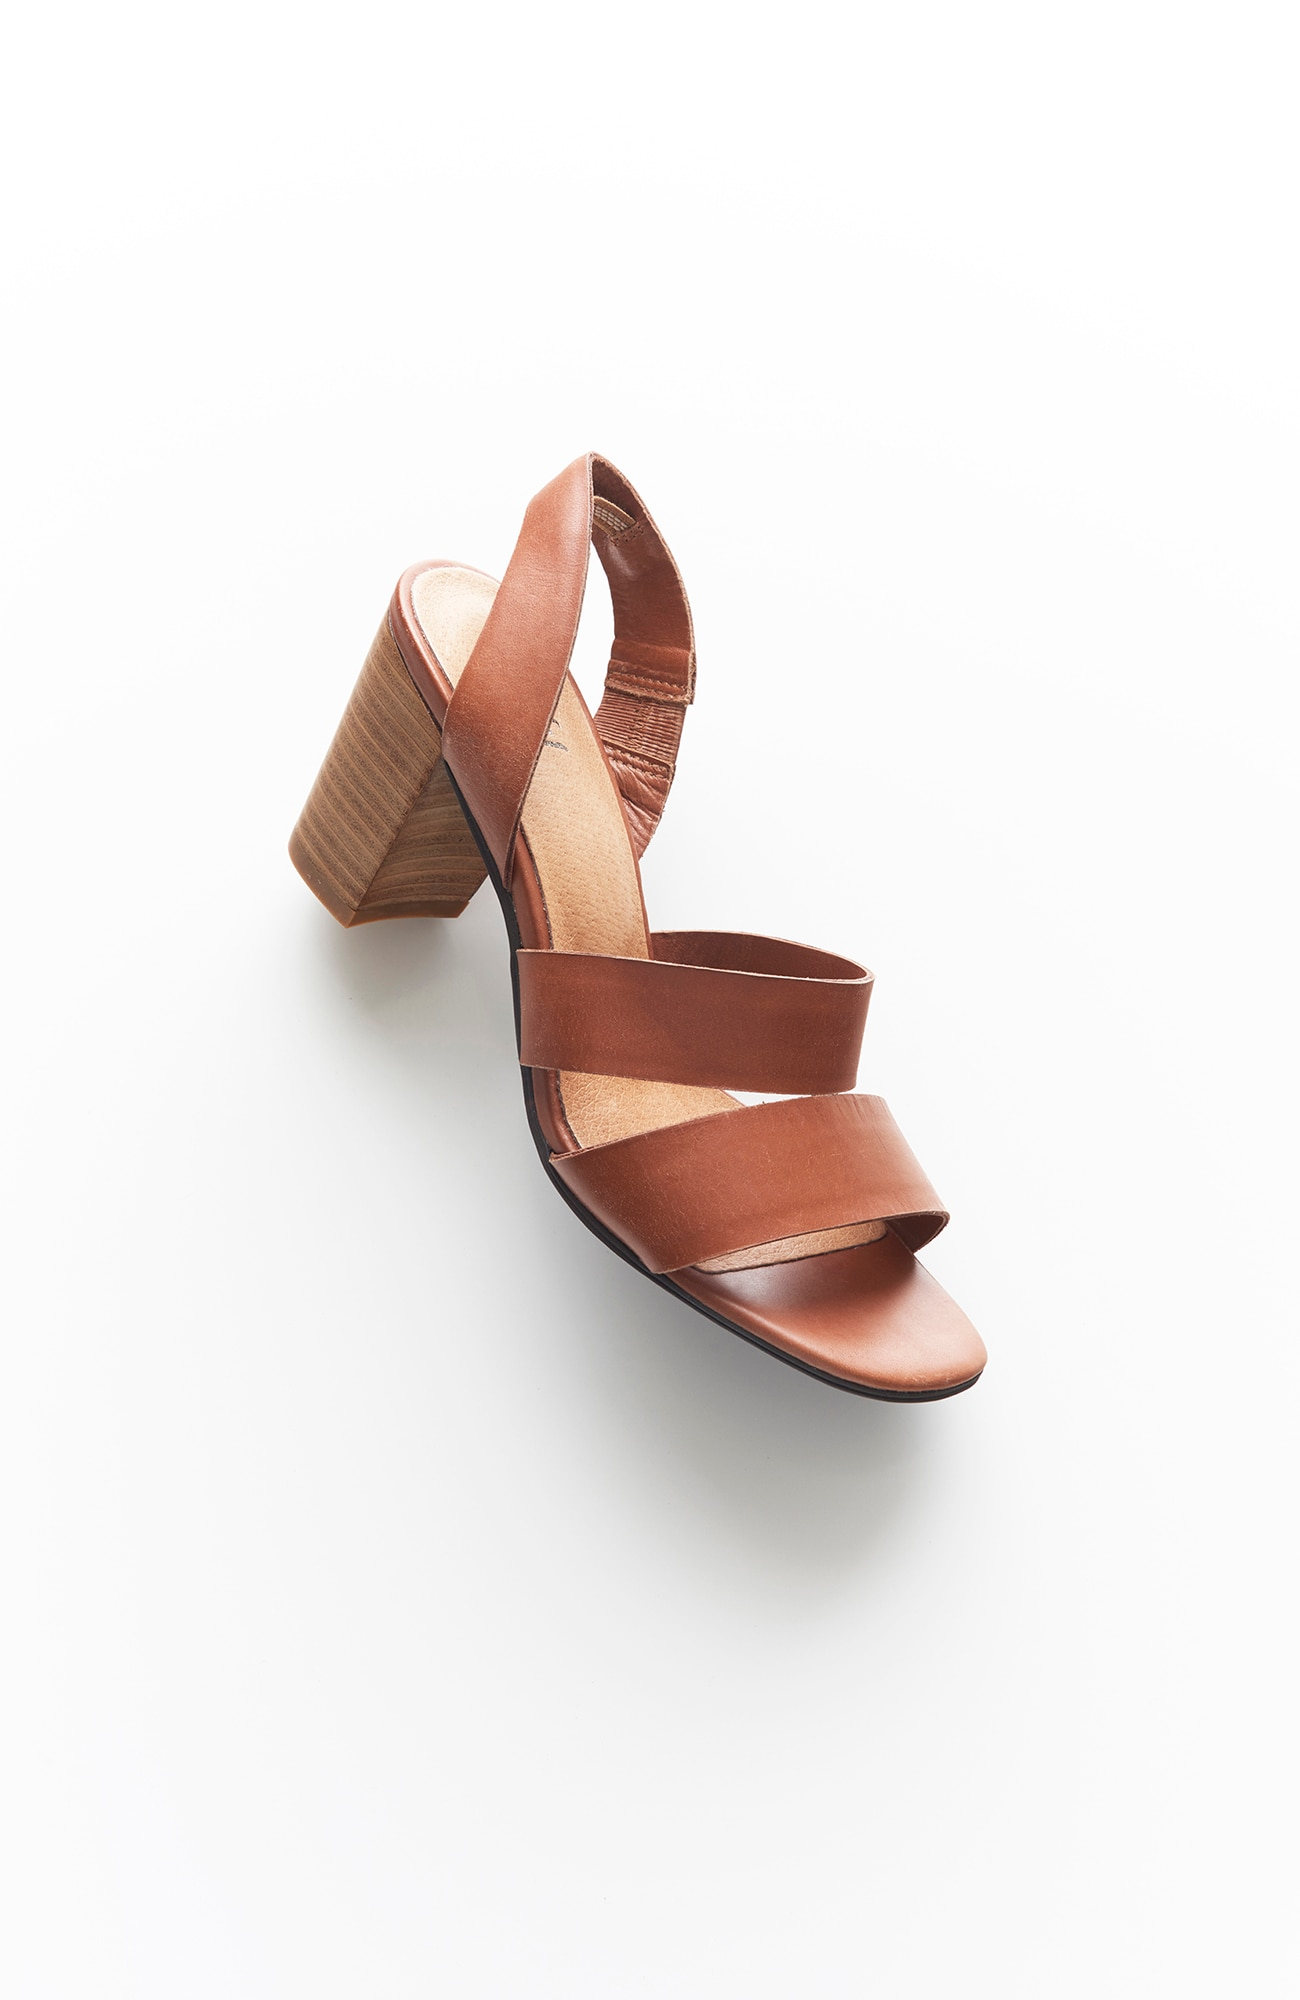 stacked-heel sandals